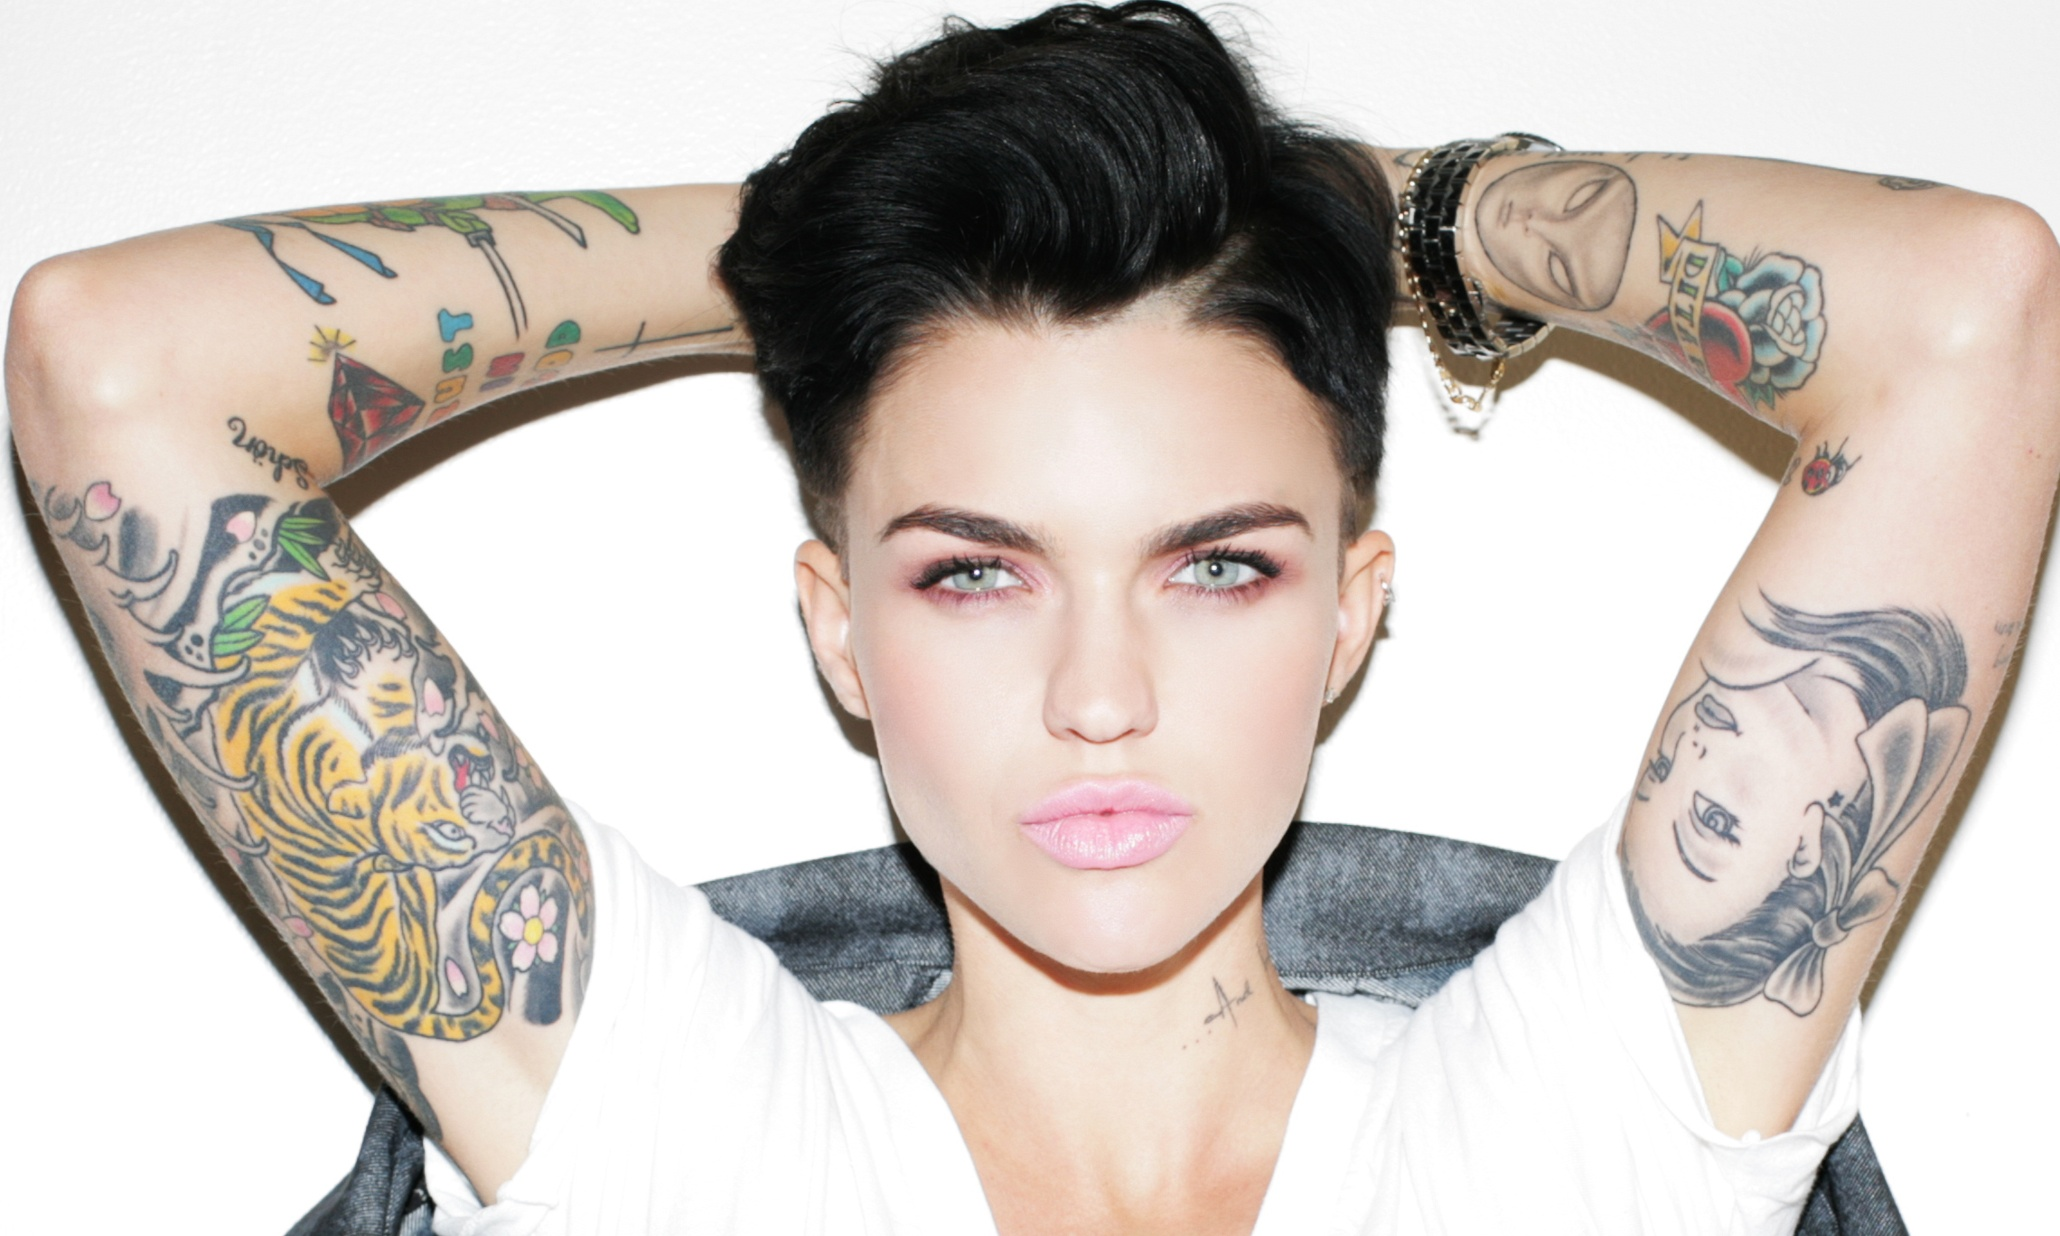 Celebrity Ruby Rose nudes (78 foto and video), Sexy, Hot, Boobs, cleavage 2019